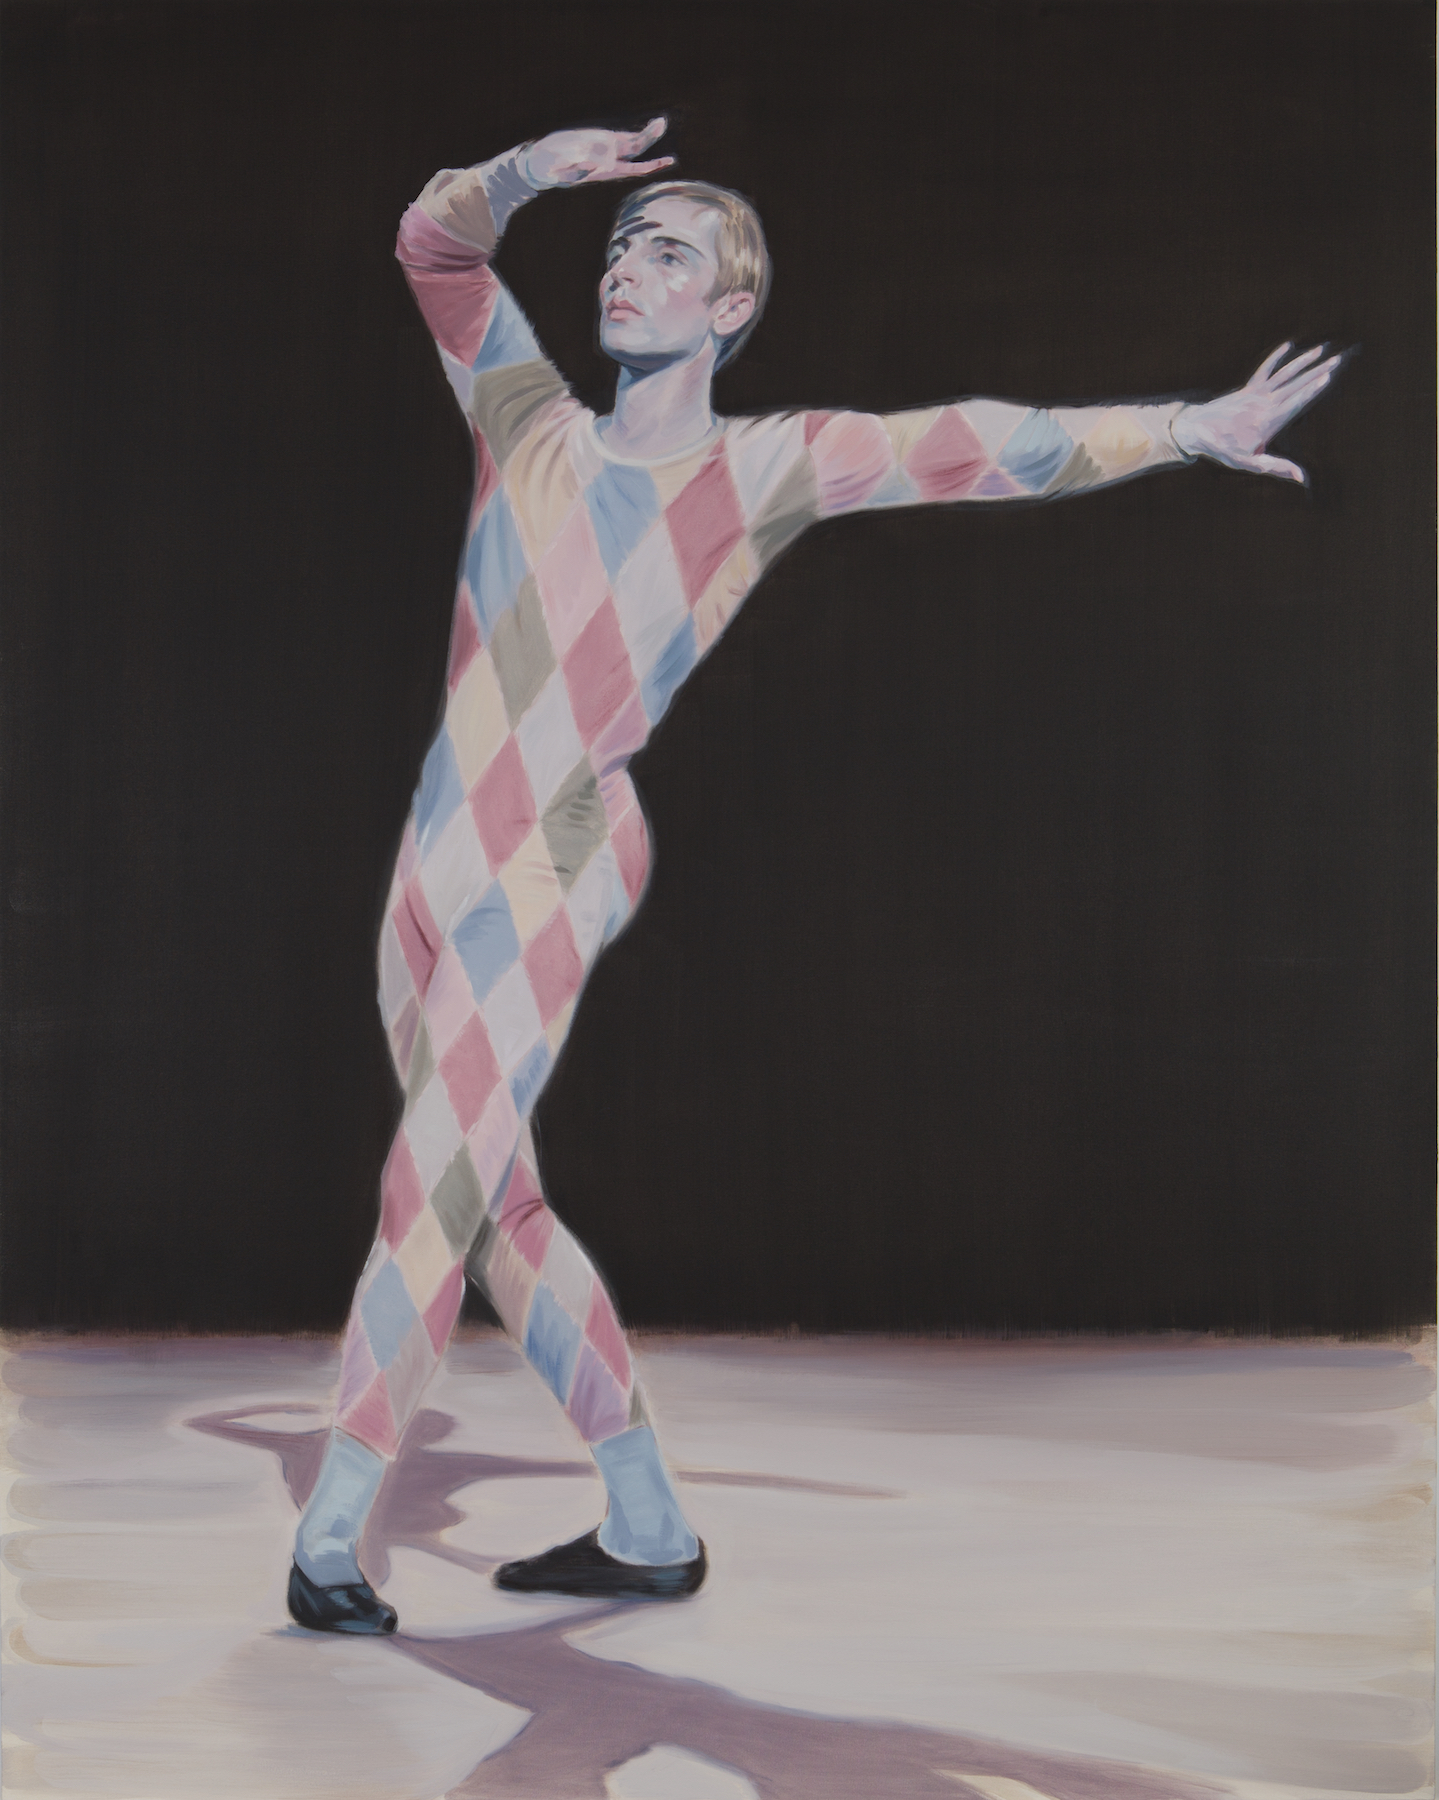 Kris Knight, Erik as Harlequin, 2017, oil on canvas, 84 x 66 inches